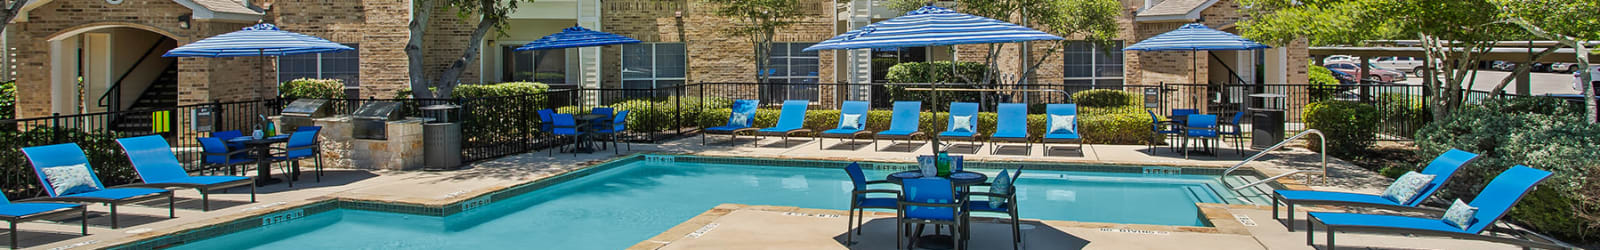 Neighborhood at Stoneybrook Apartments & Townhomes in San Antonio, Texas